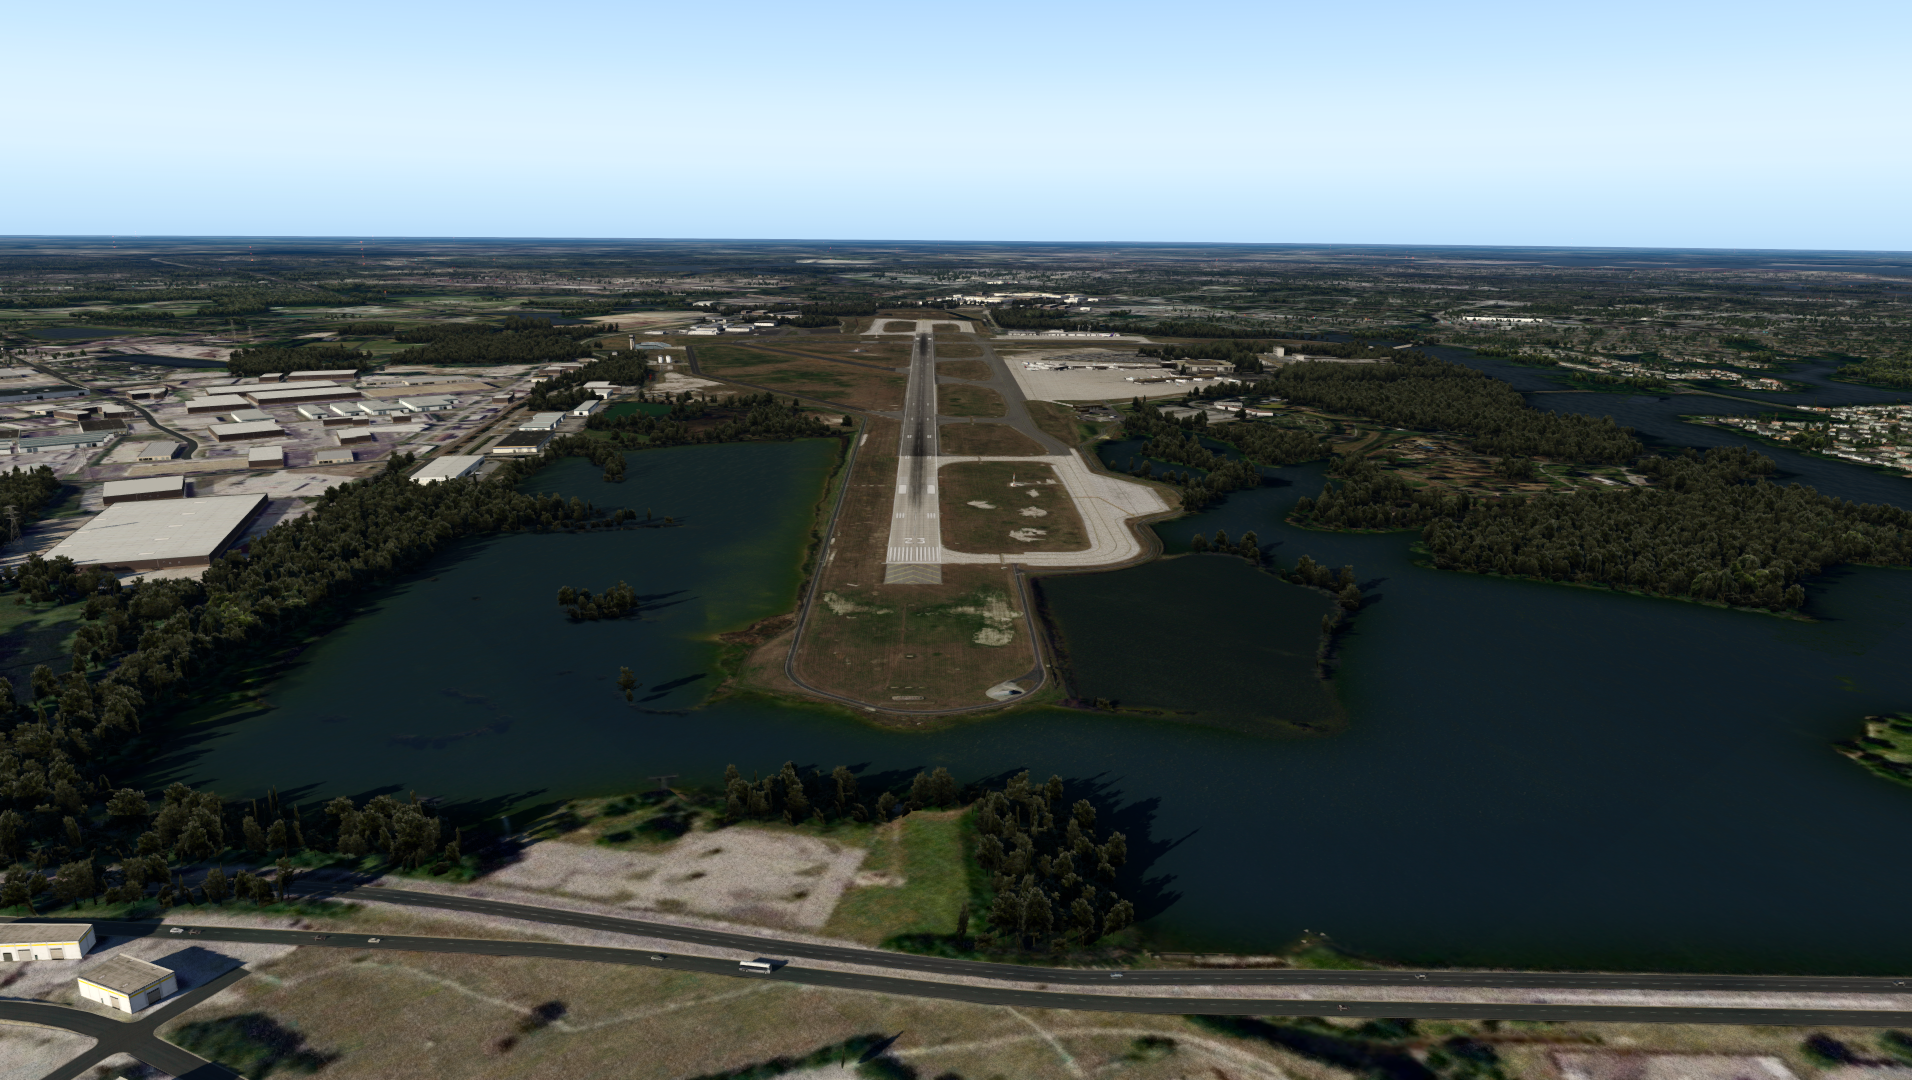 VERTICAL SIMULATIONS - KORF - NORFOLK INTERNATIONAL AIRPORT